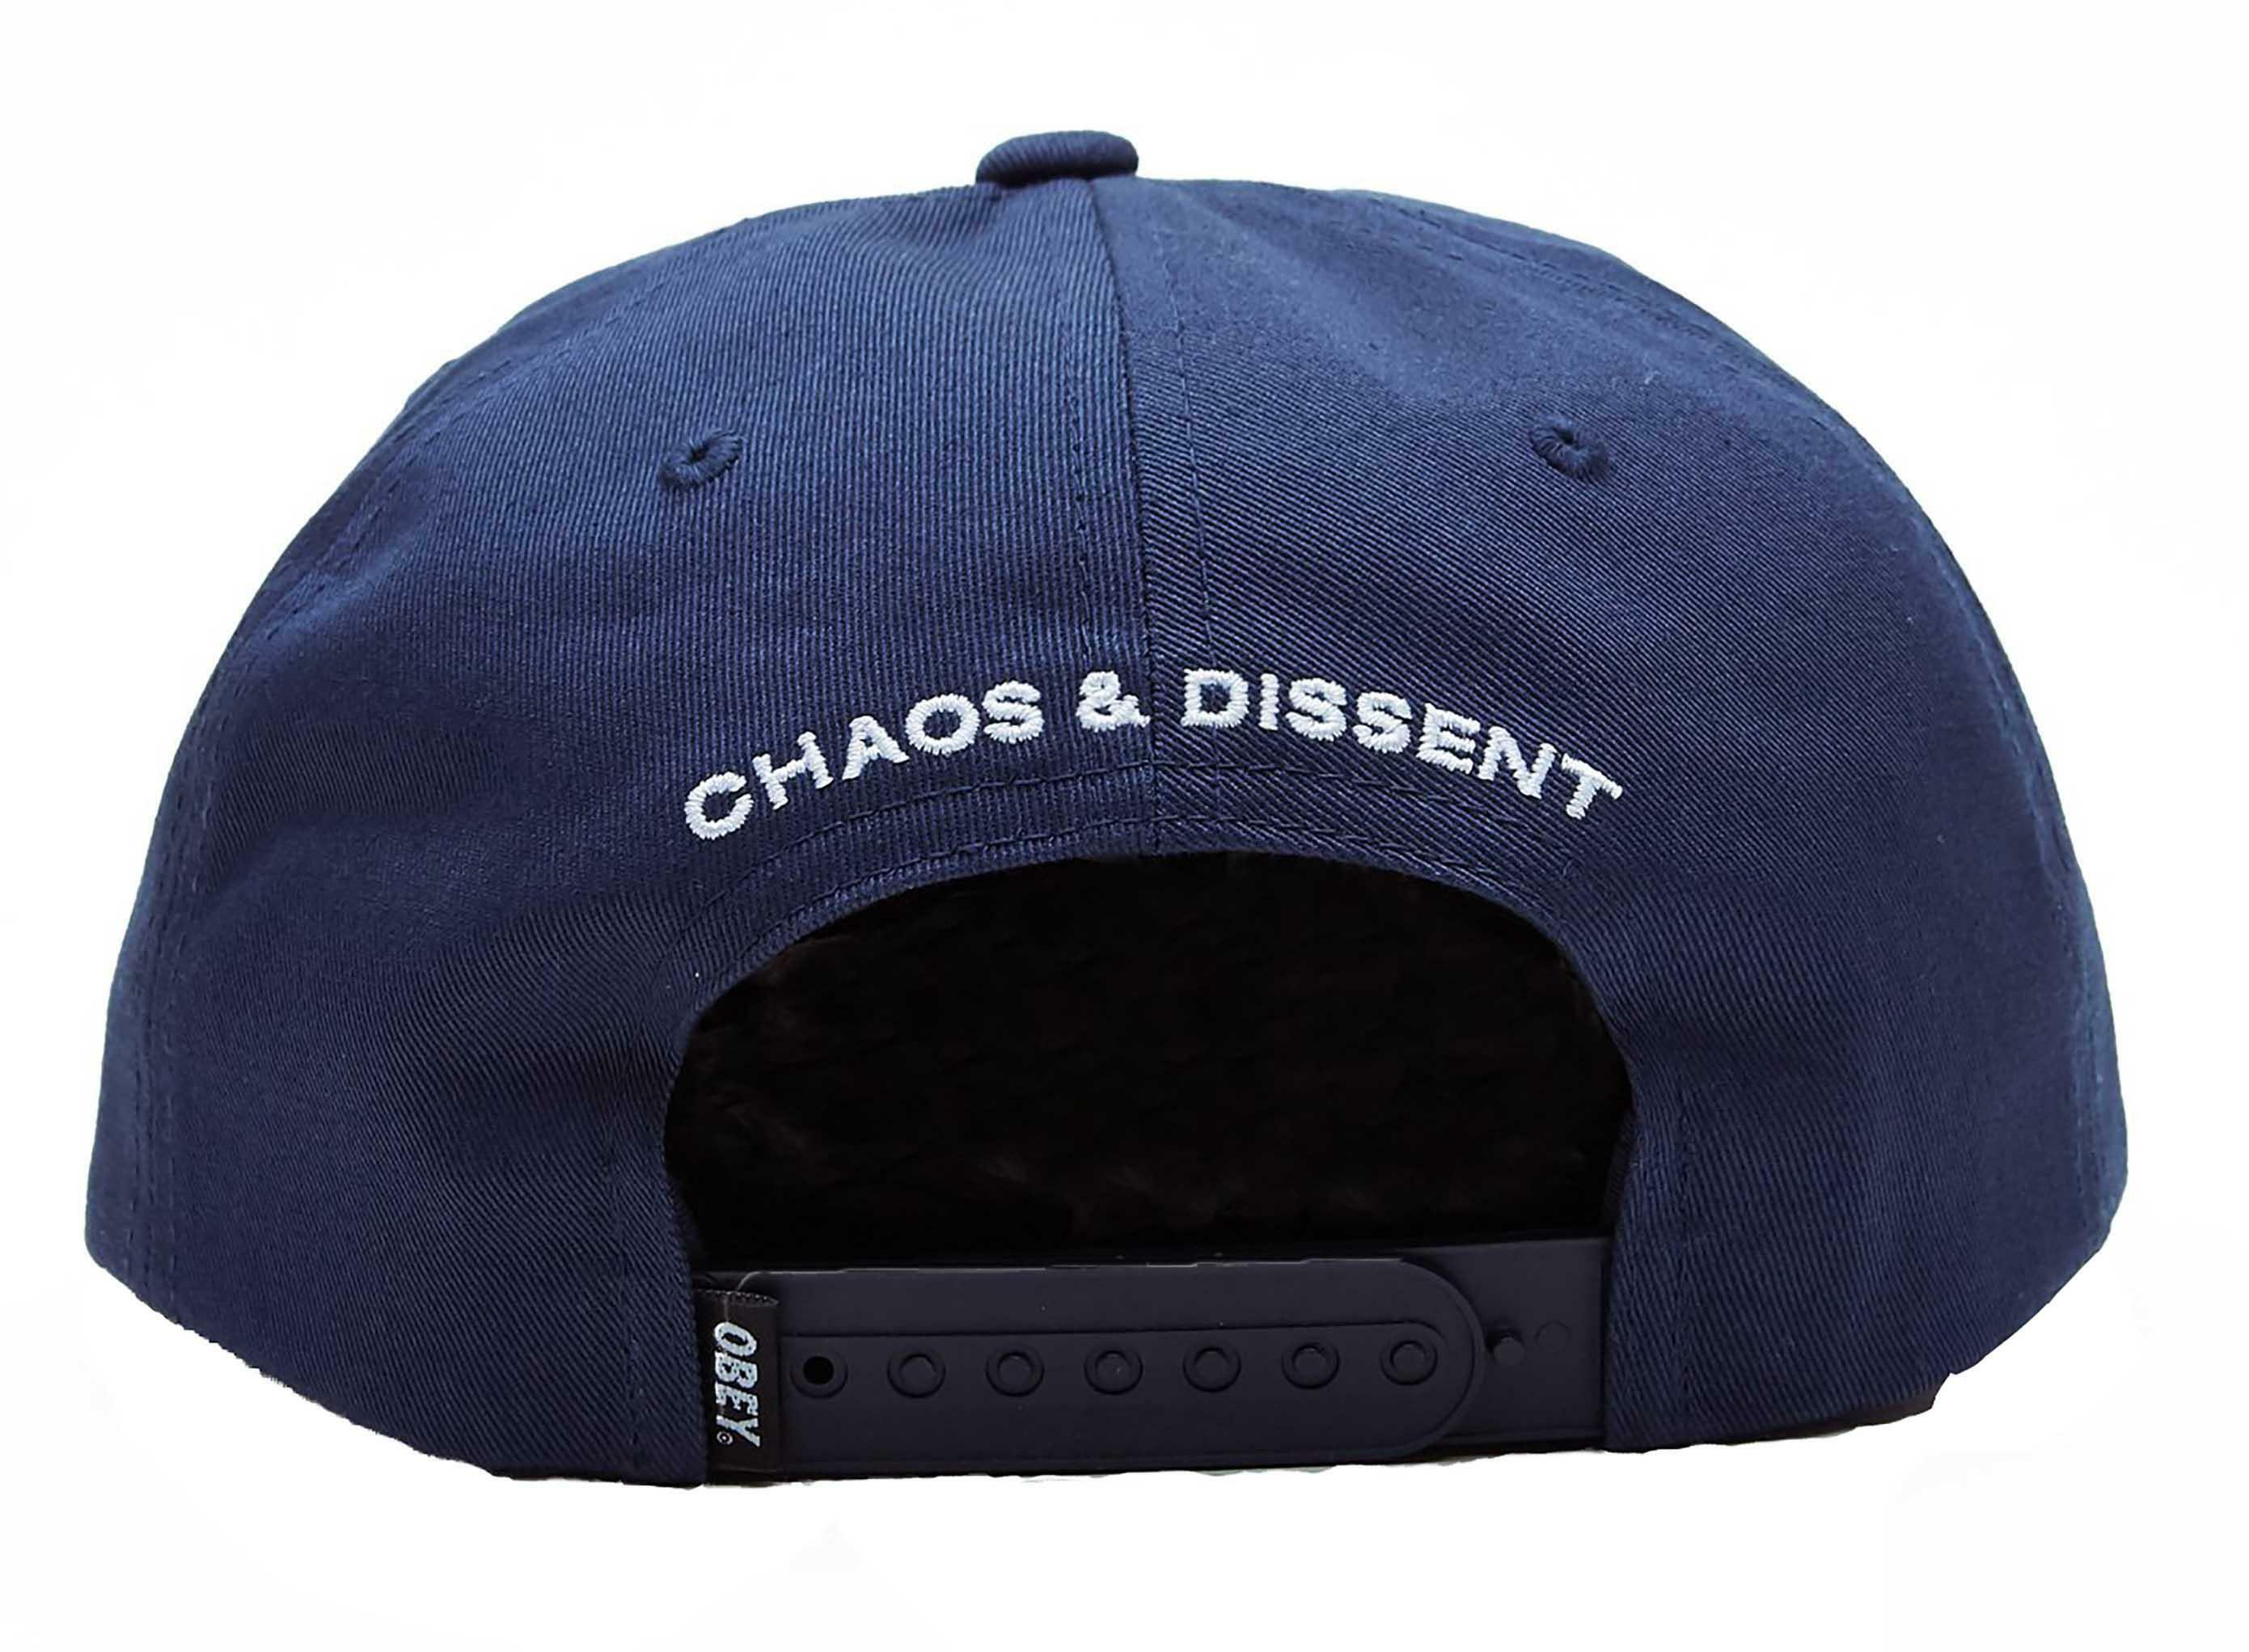 obey obey dropout snapback cappello uomo blu 22119a037nvy